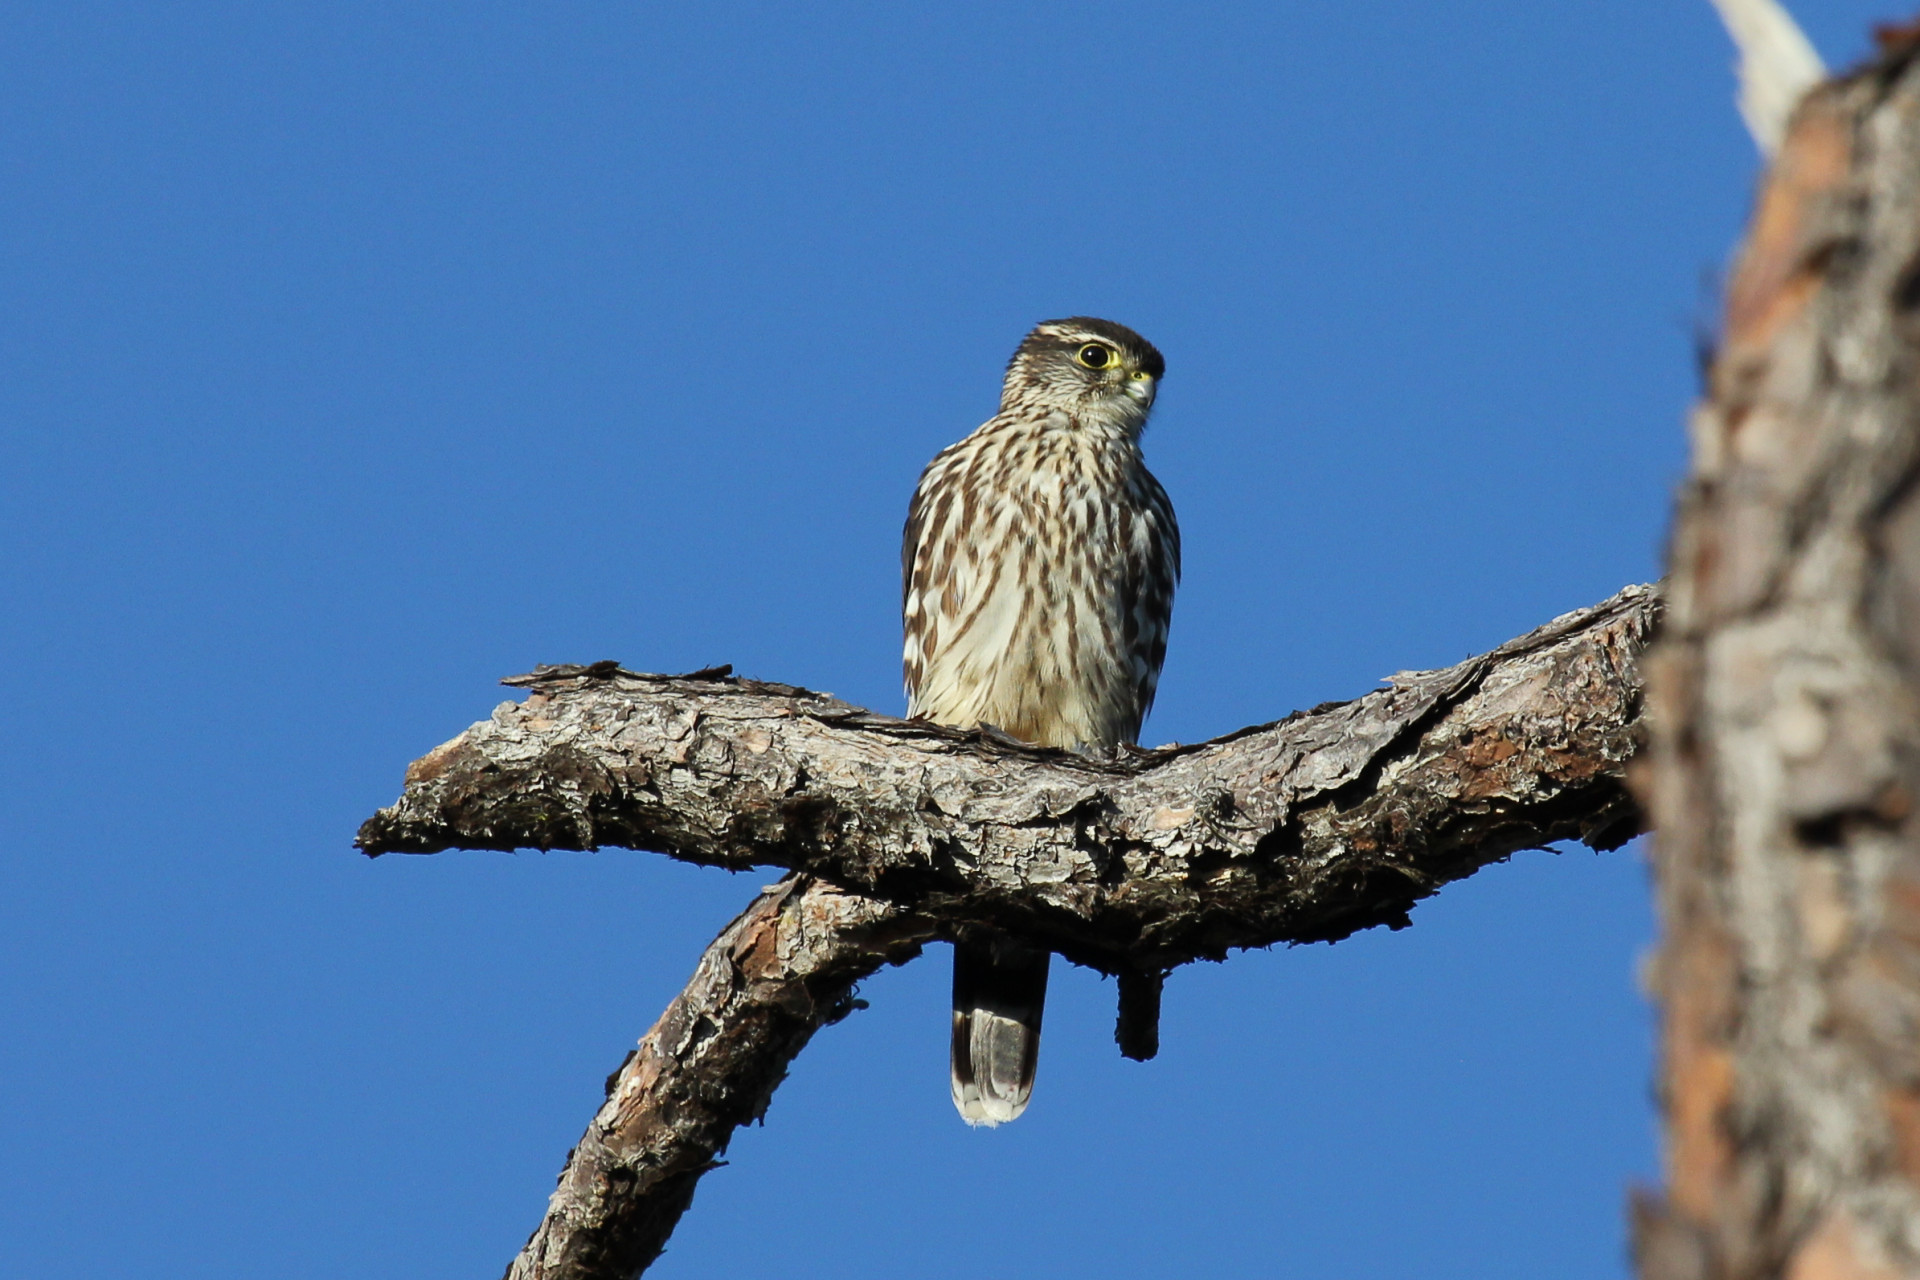 Merlin. Oyster Creek Preserve, Englewood